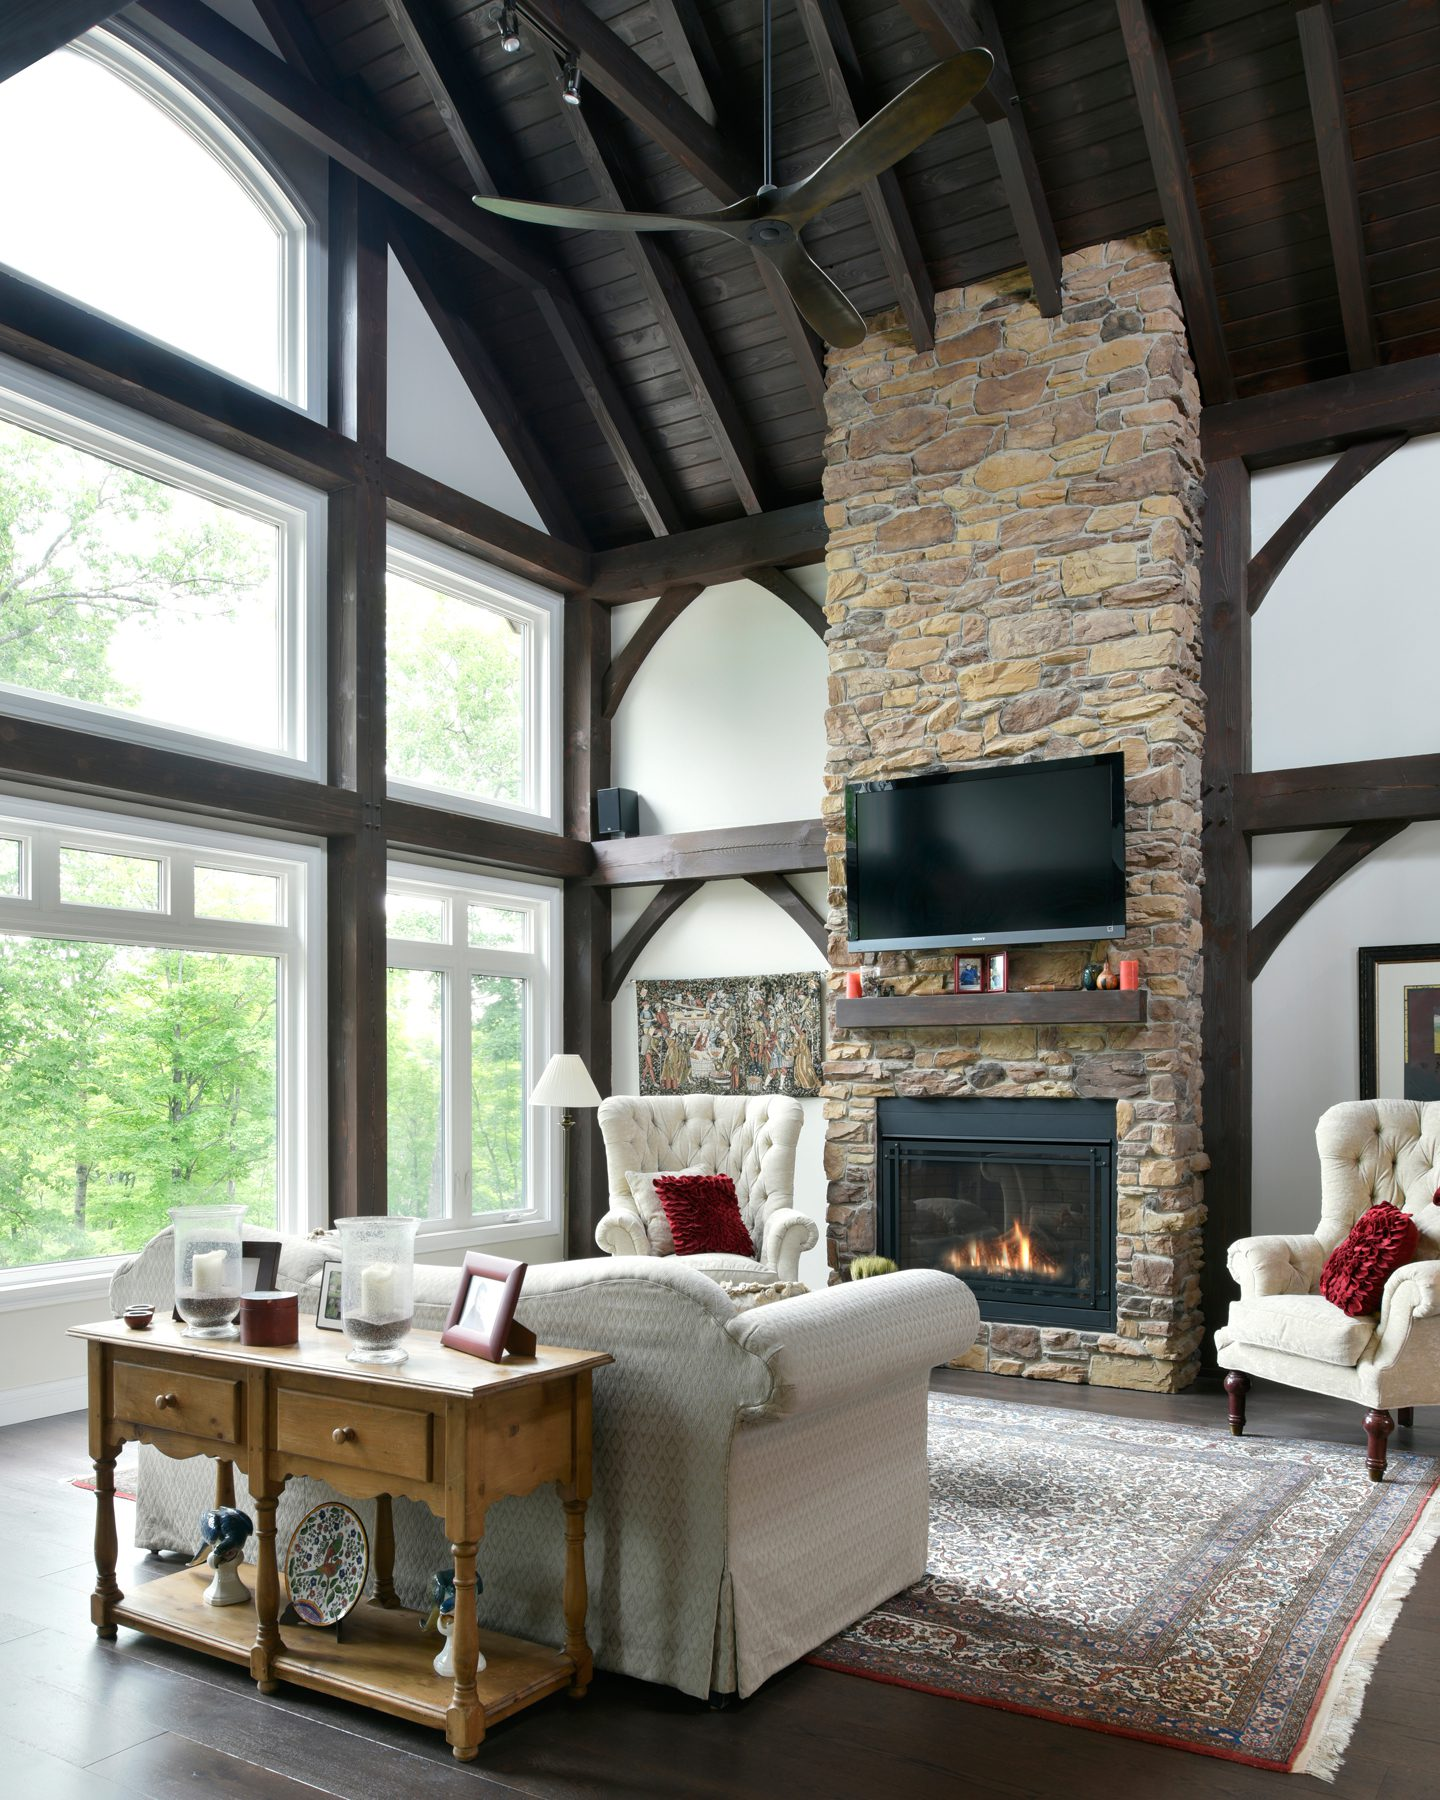 Normerica Timber Frame, Interior, Cottage, Living Room, Great Room, Fireplace